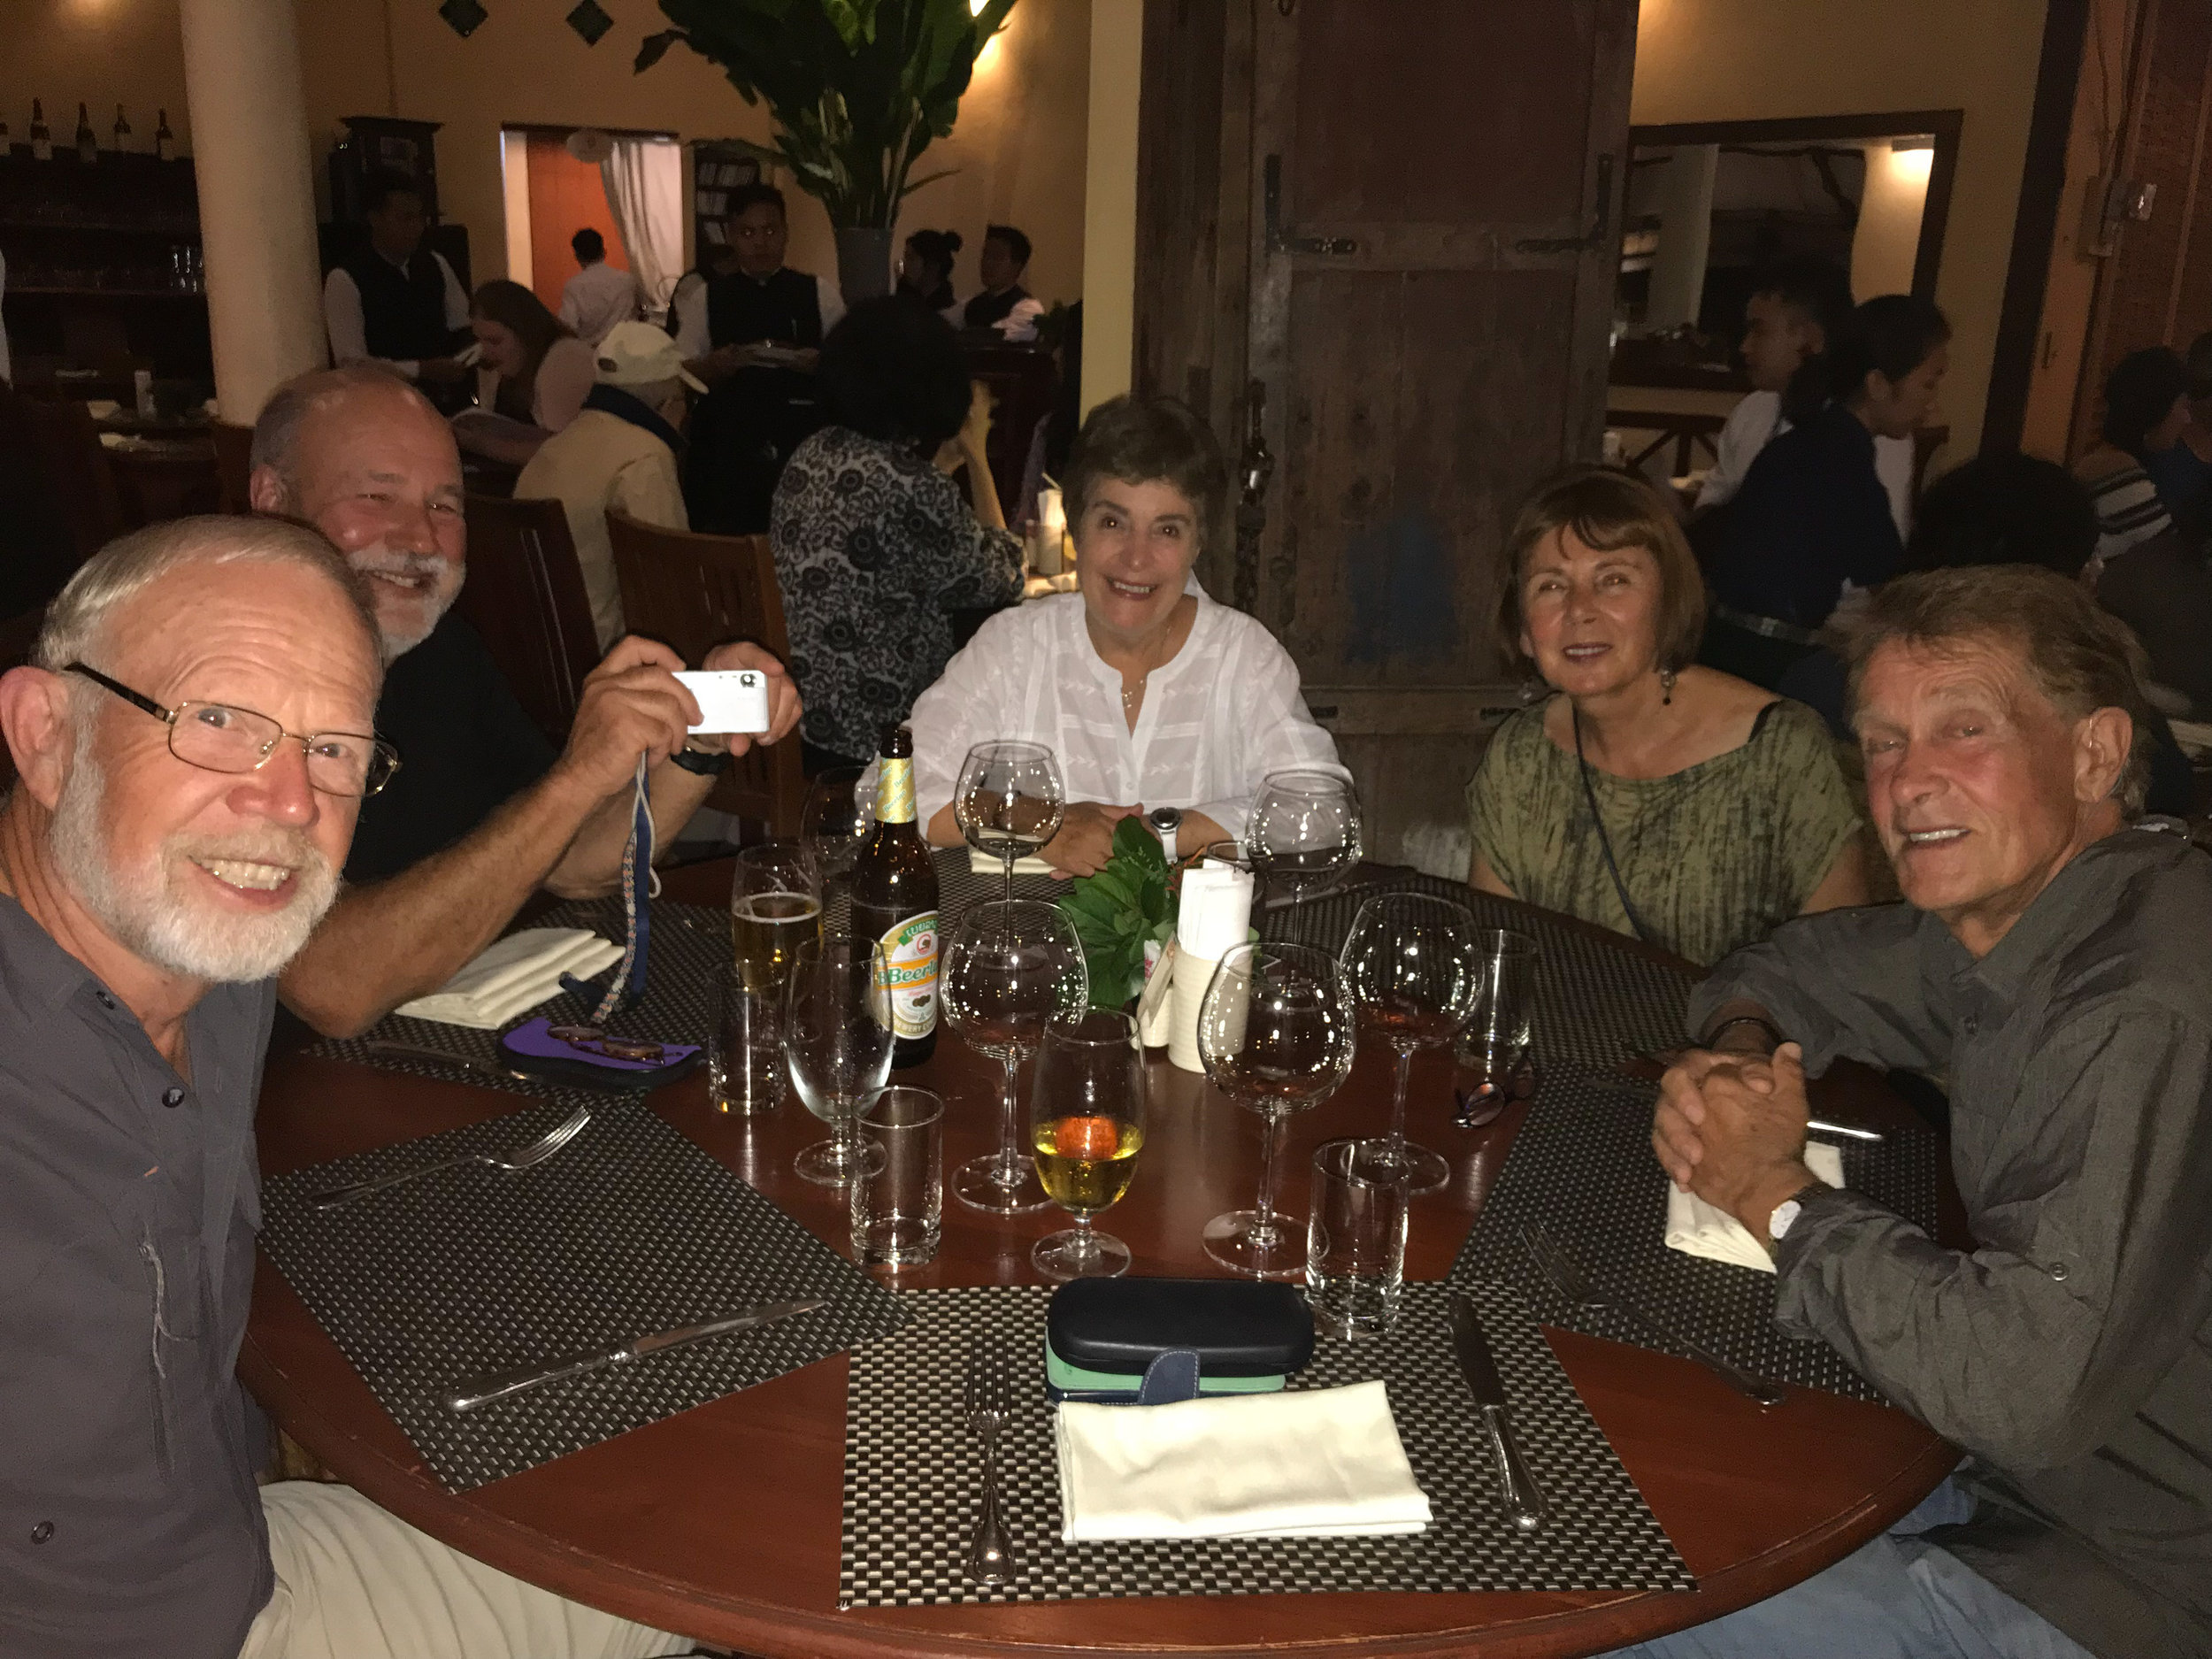 Tony, Chris, Diana, Janet & Sinclair, dinner at L'Elephant Restaurant, Luang Prabang, Laos, 1 Dec 2017.jpg